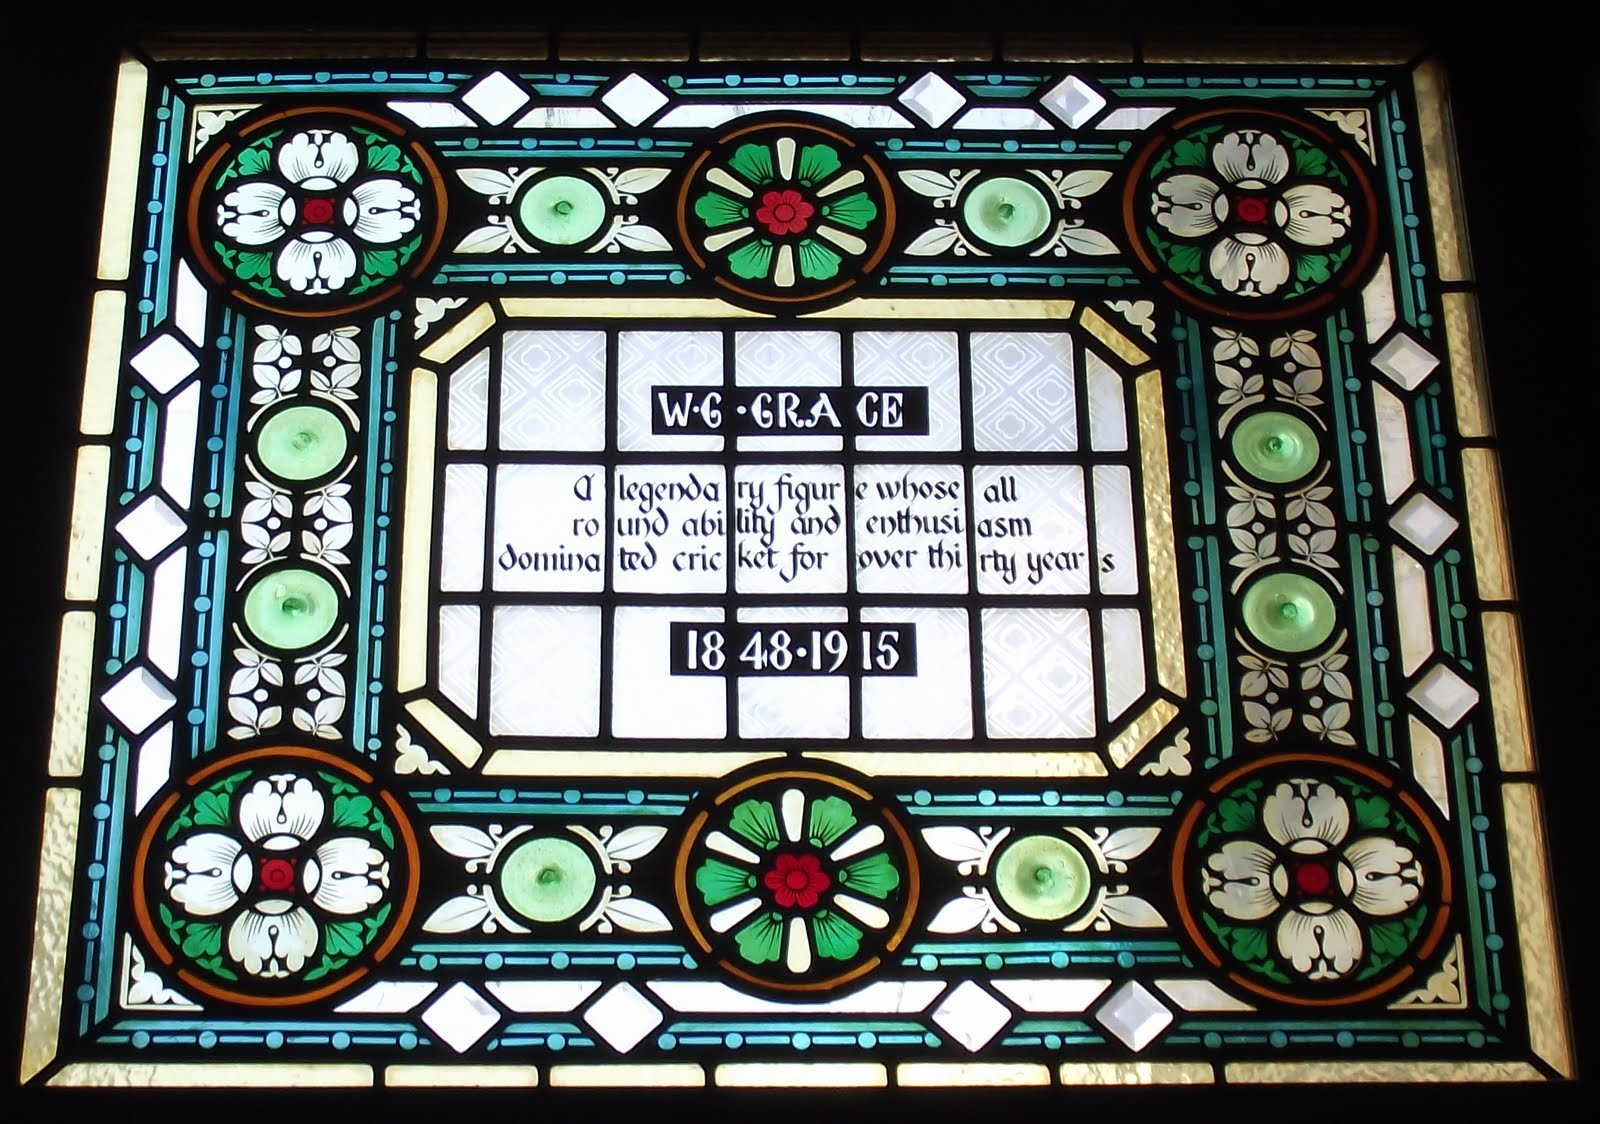 WG Grace stained glass at the Champion pub